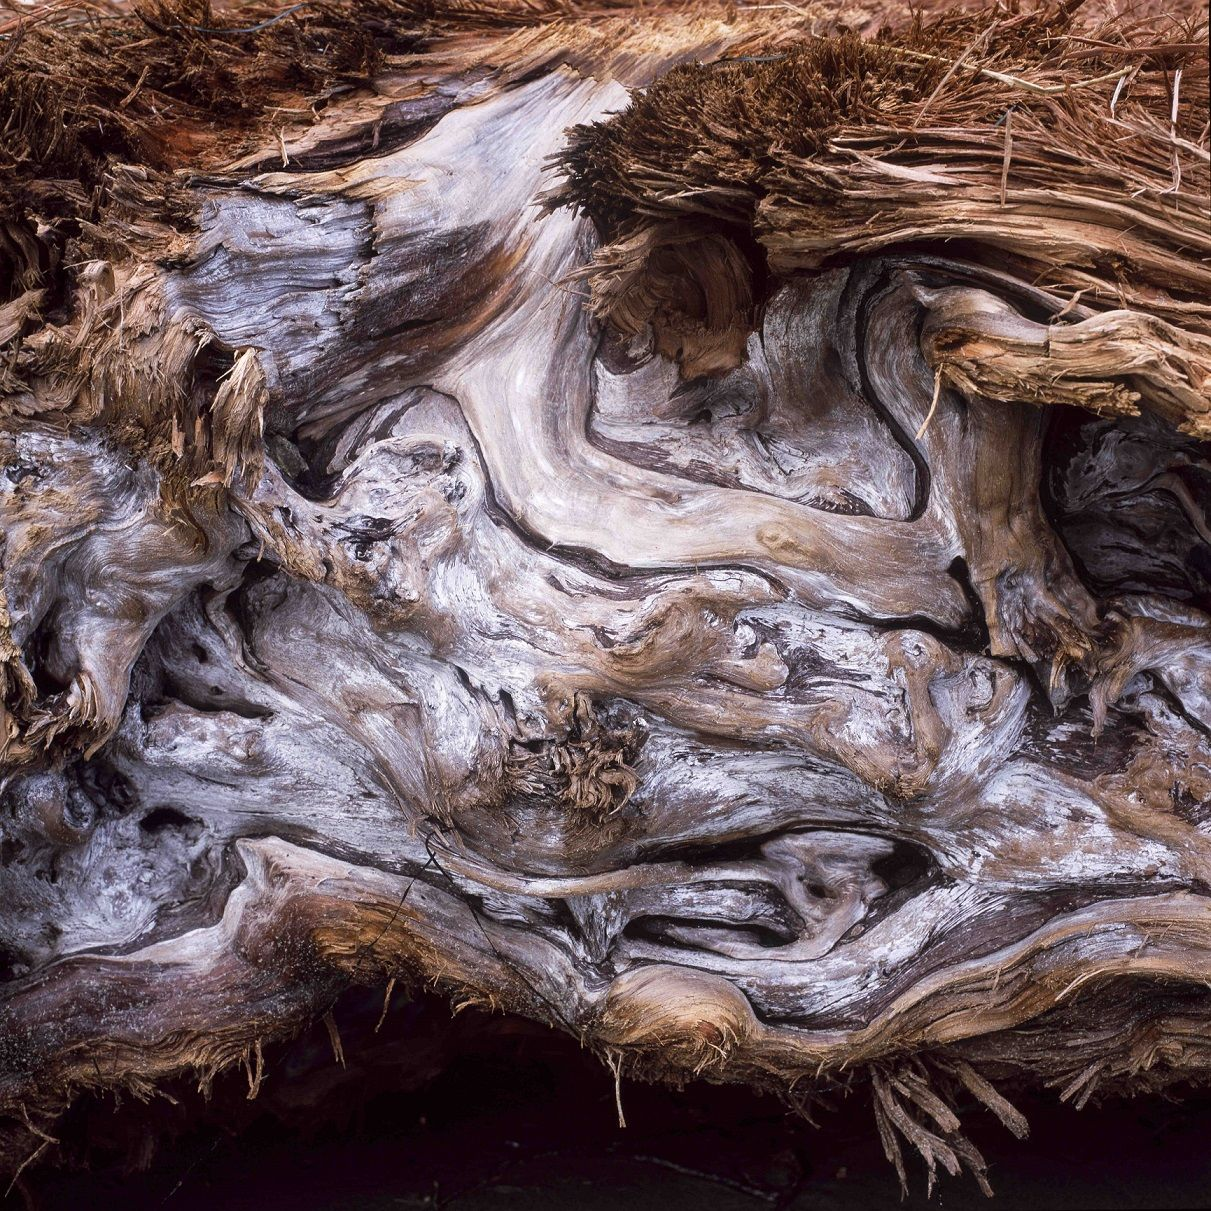 Driftwood,Luca Marziale,Photographie